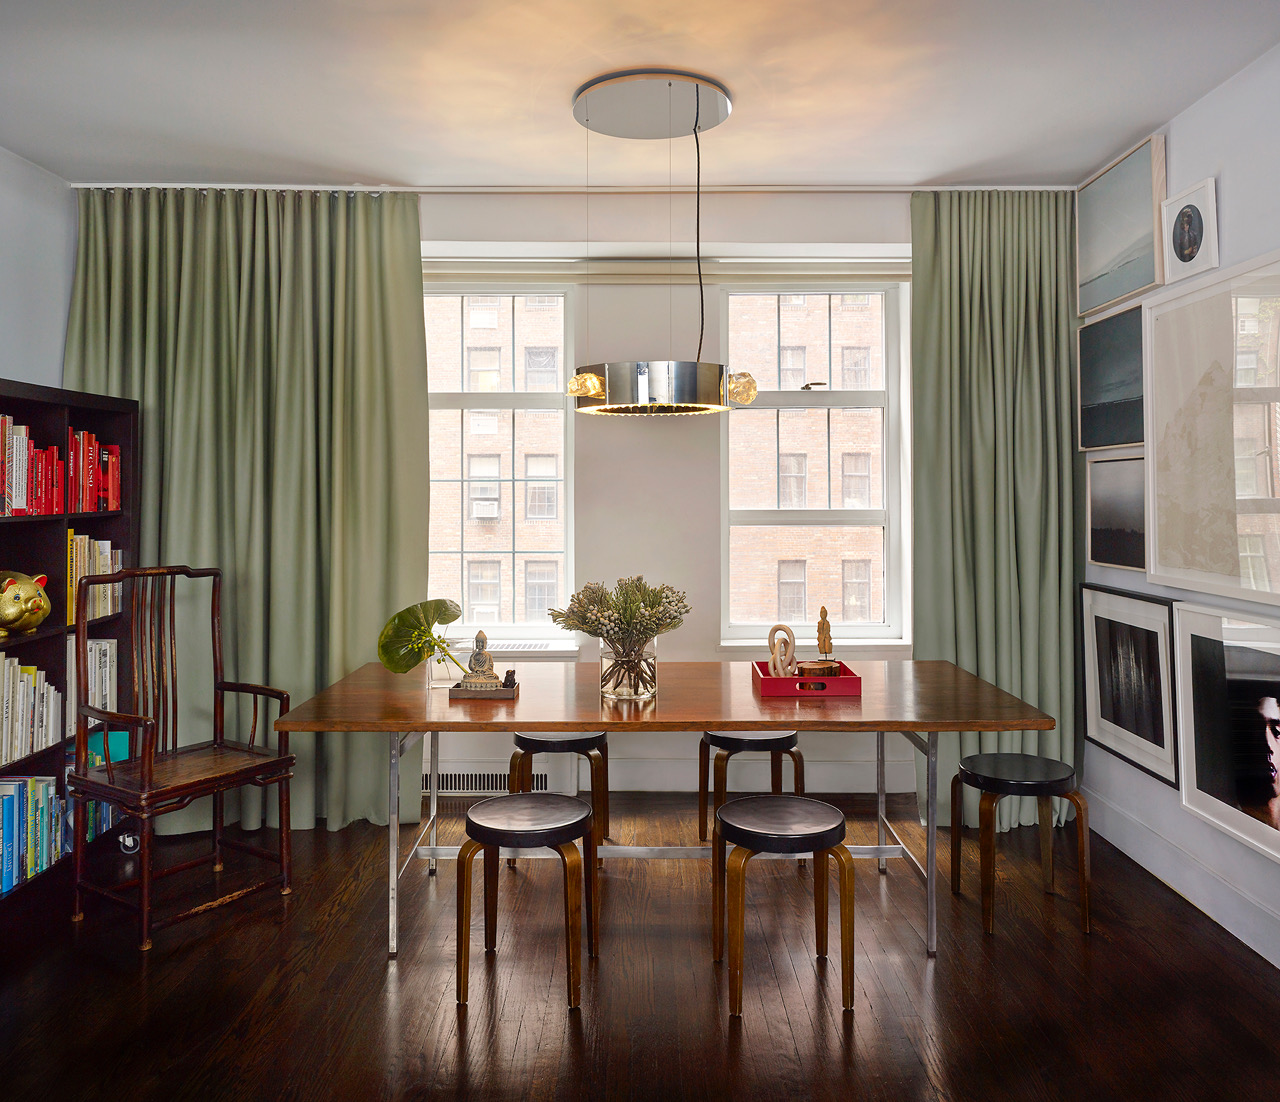 Apartement: The Cozy New York Apartment D.B. Kim Calls Home